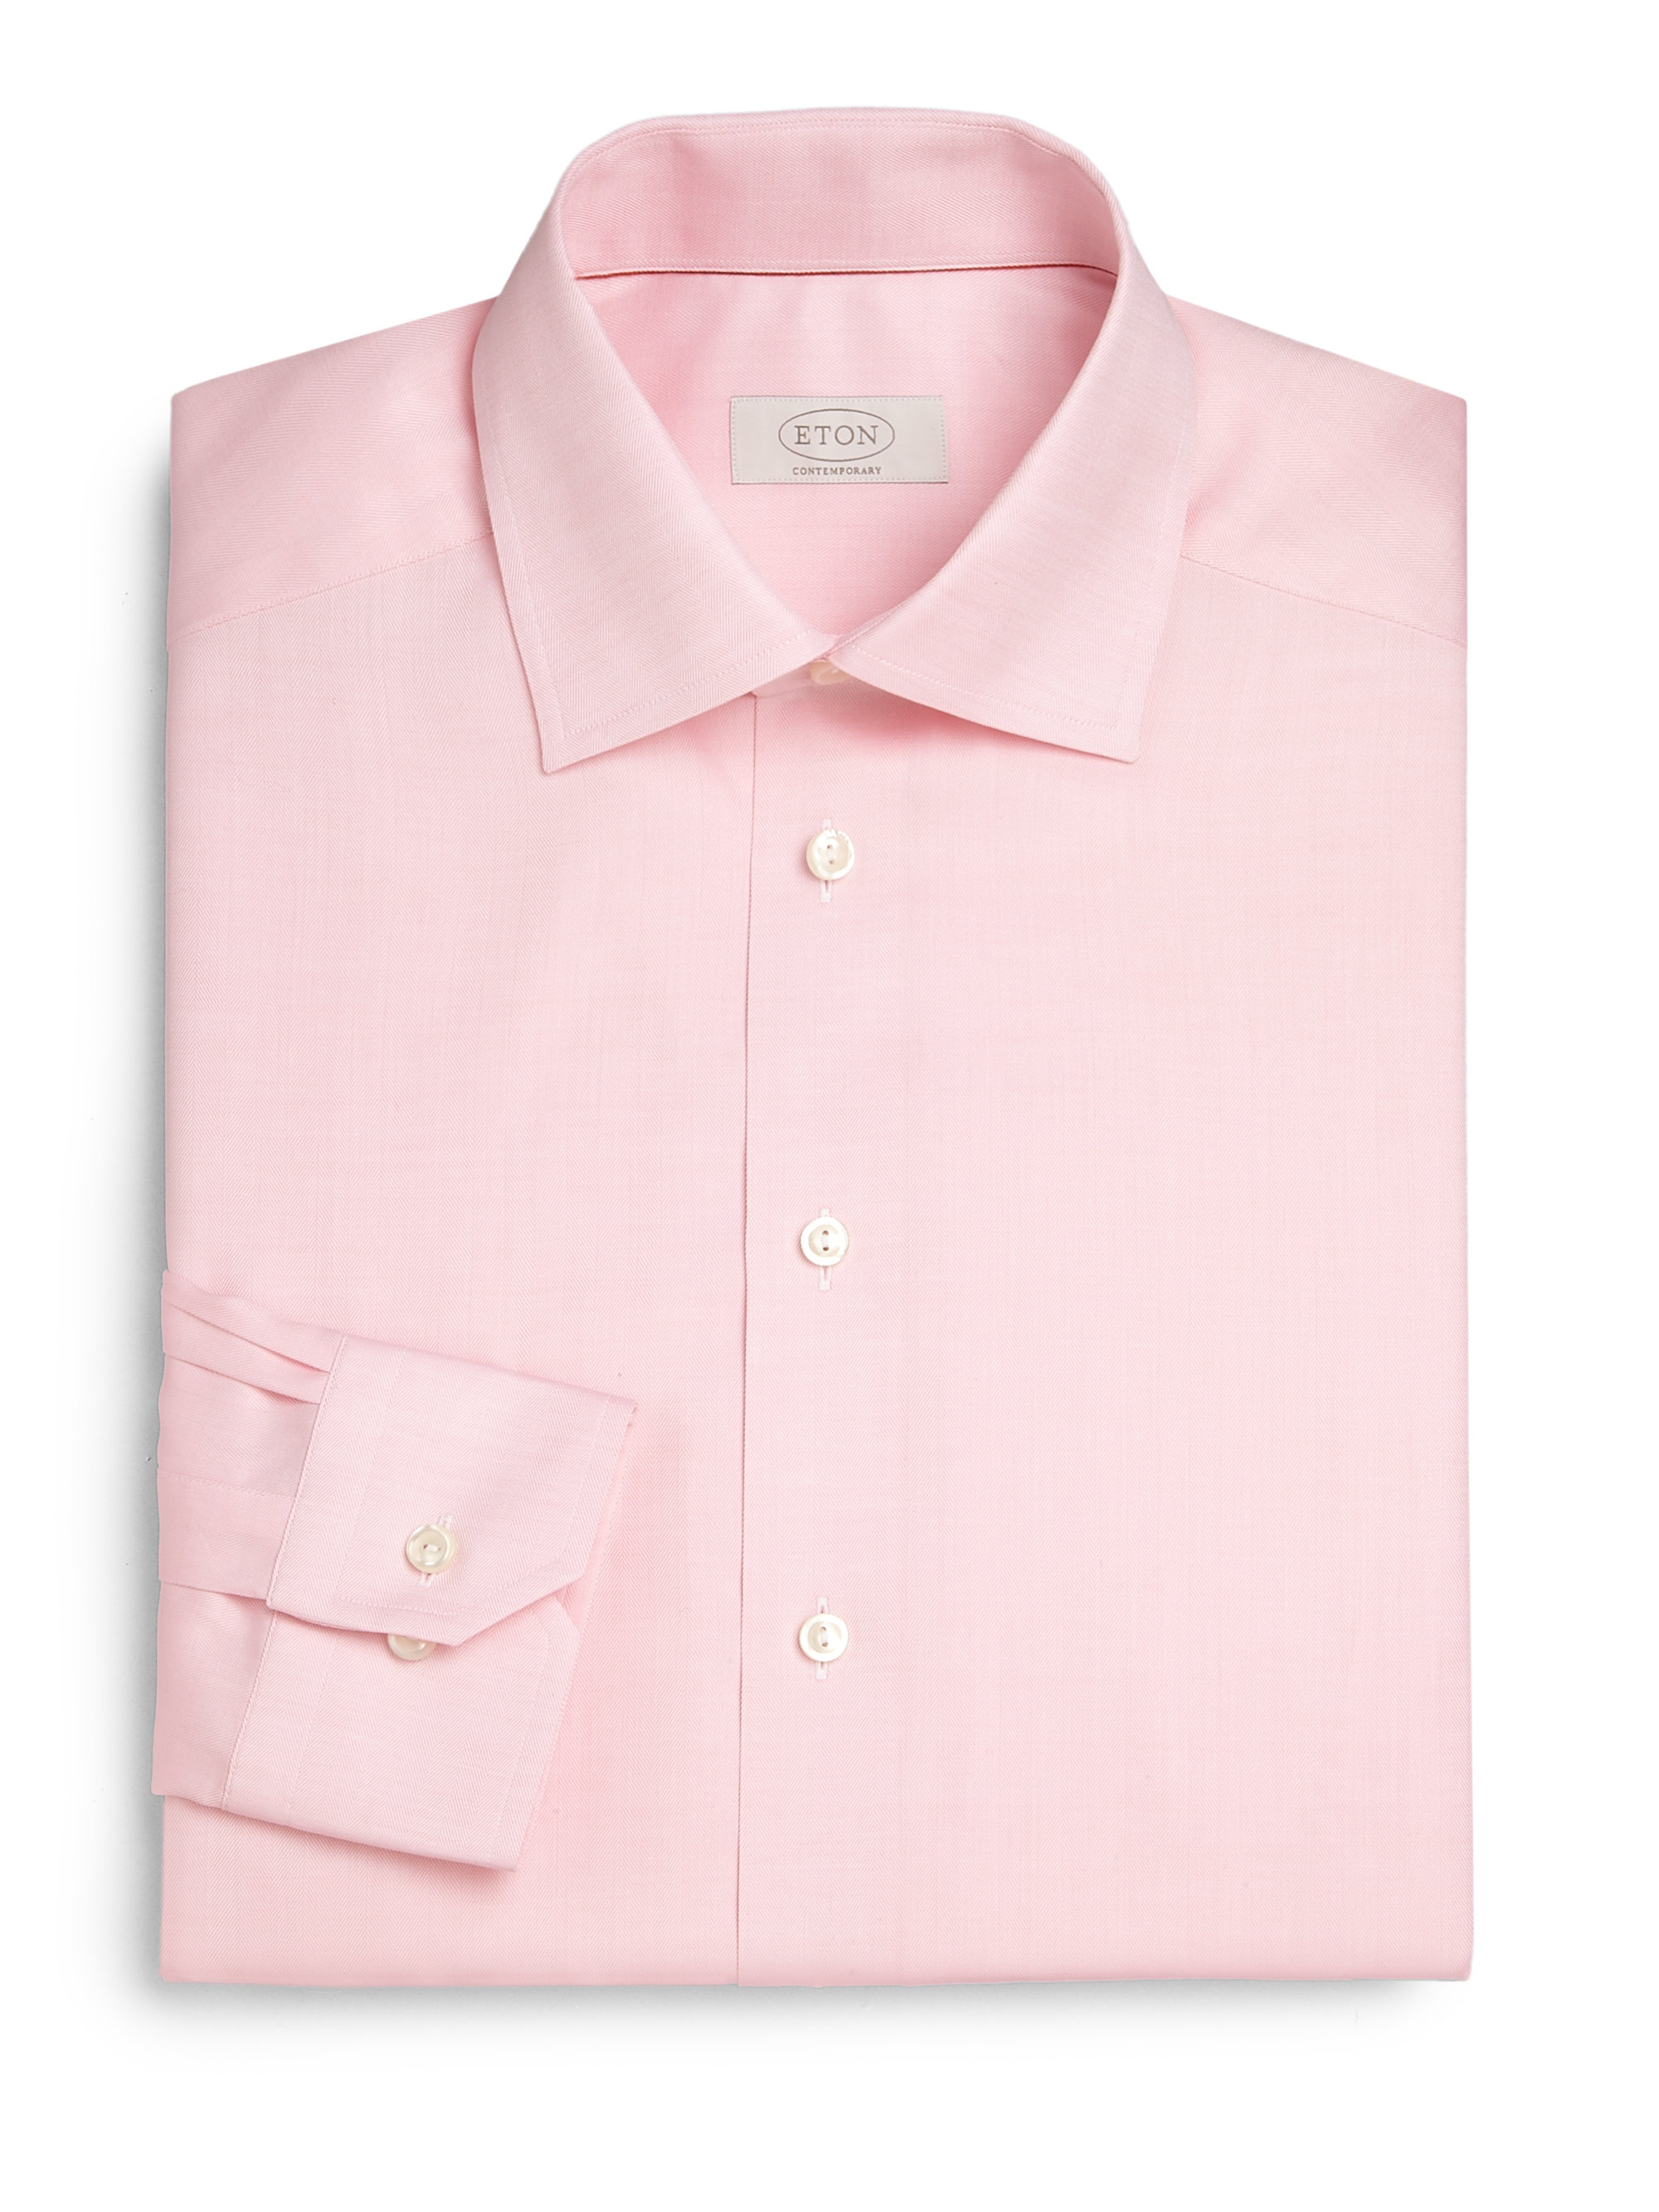 Eton Of Sweden Contemporary Fit Herringbone Dress Shirt In